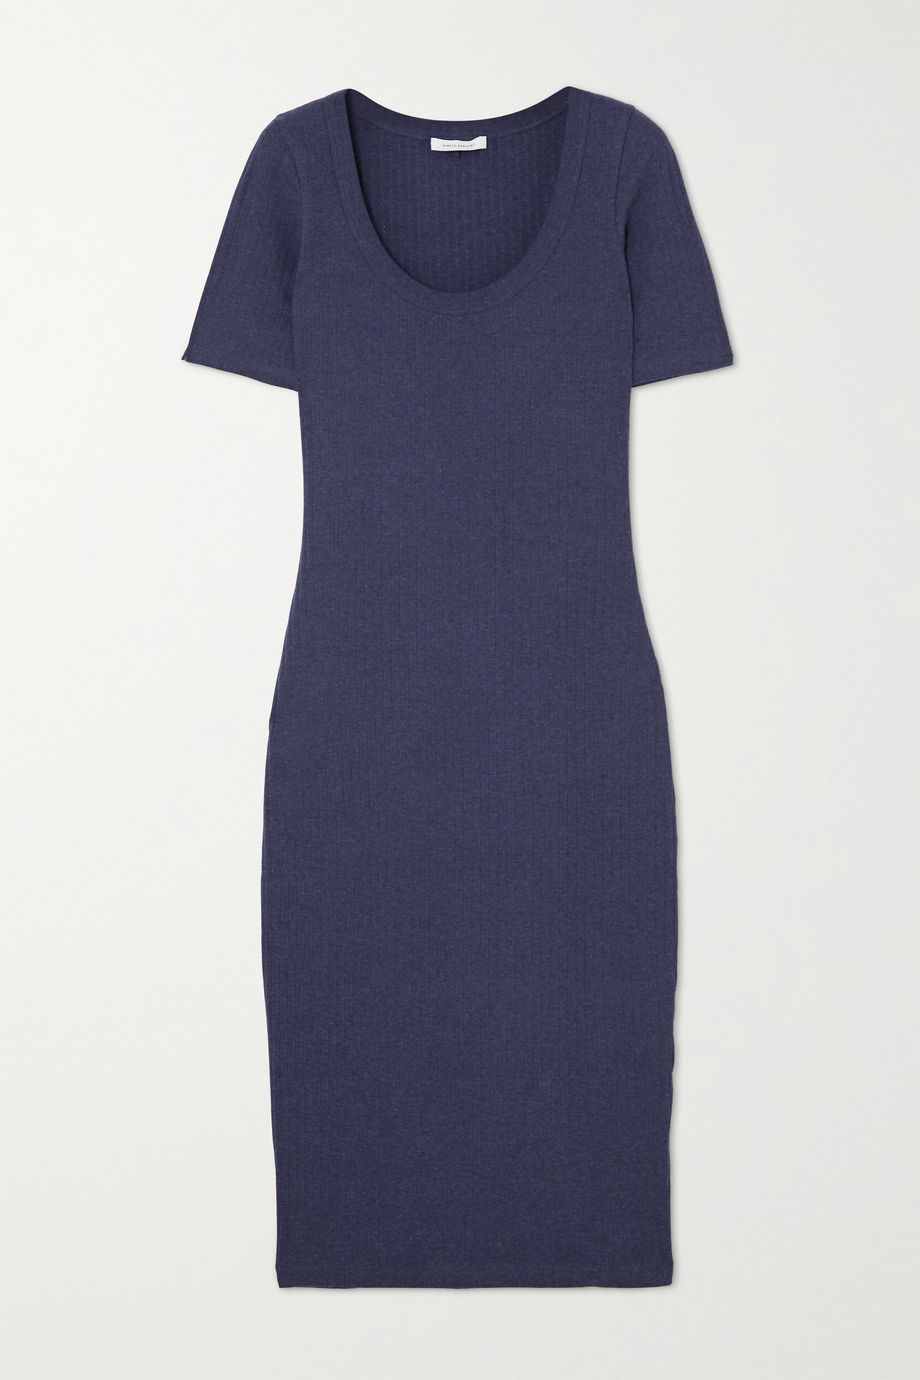 Ninety Percent Ribbed stretch-organic cotton midi dress